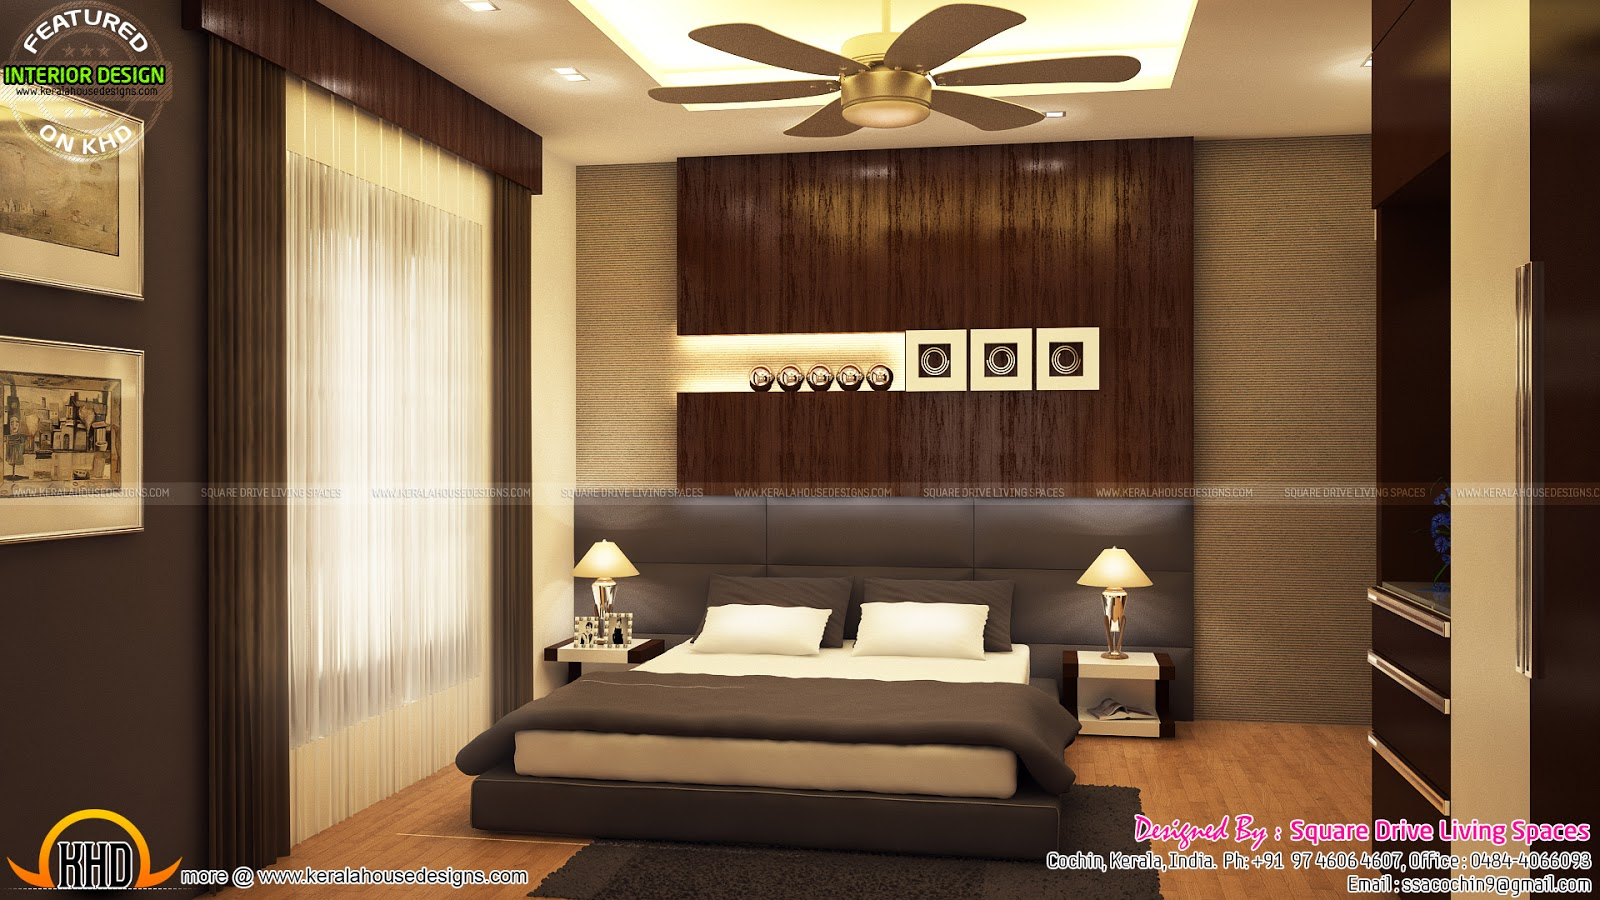 Interior designs of master bedroom living kitchen and for Full home interior design